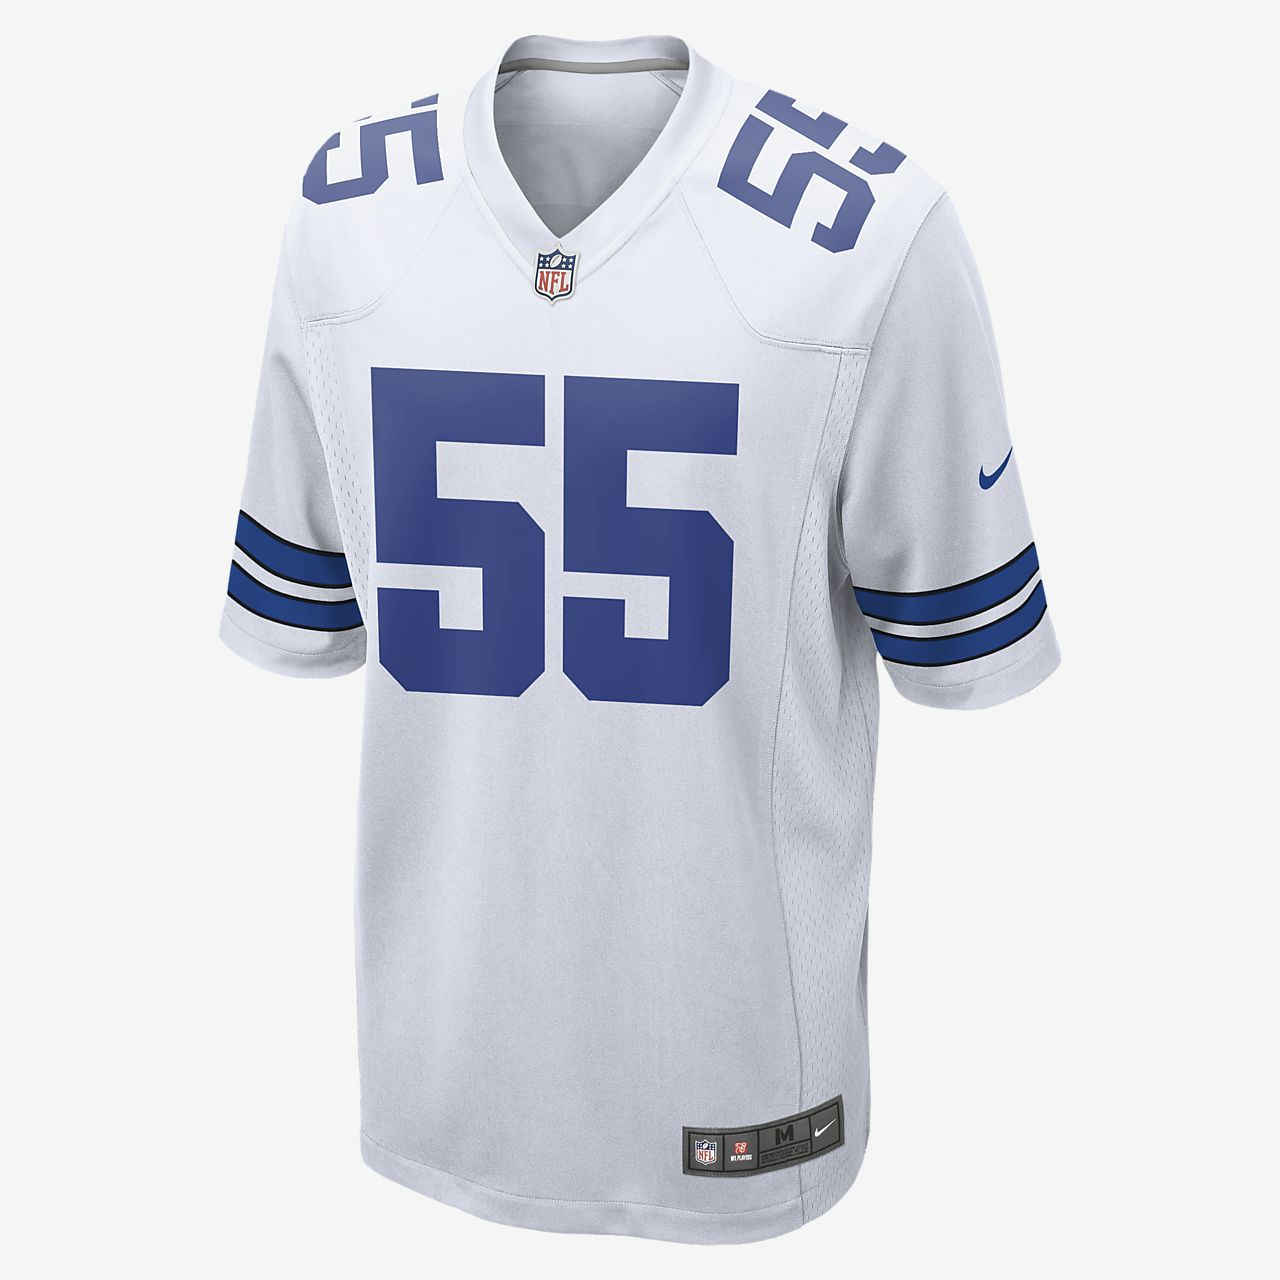 NFL Dallas Cowboys Game (Leighton Vander Esch) Men s Football Jersey ... 1512dce77